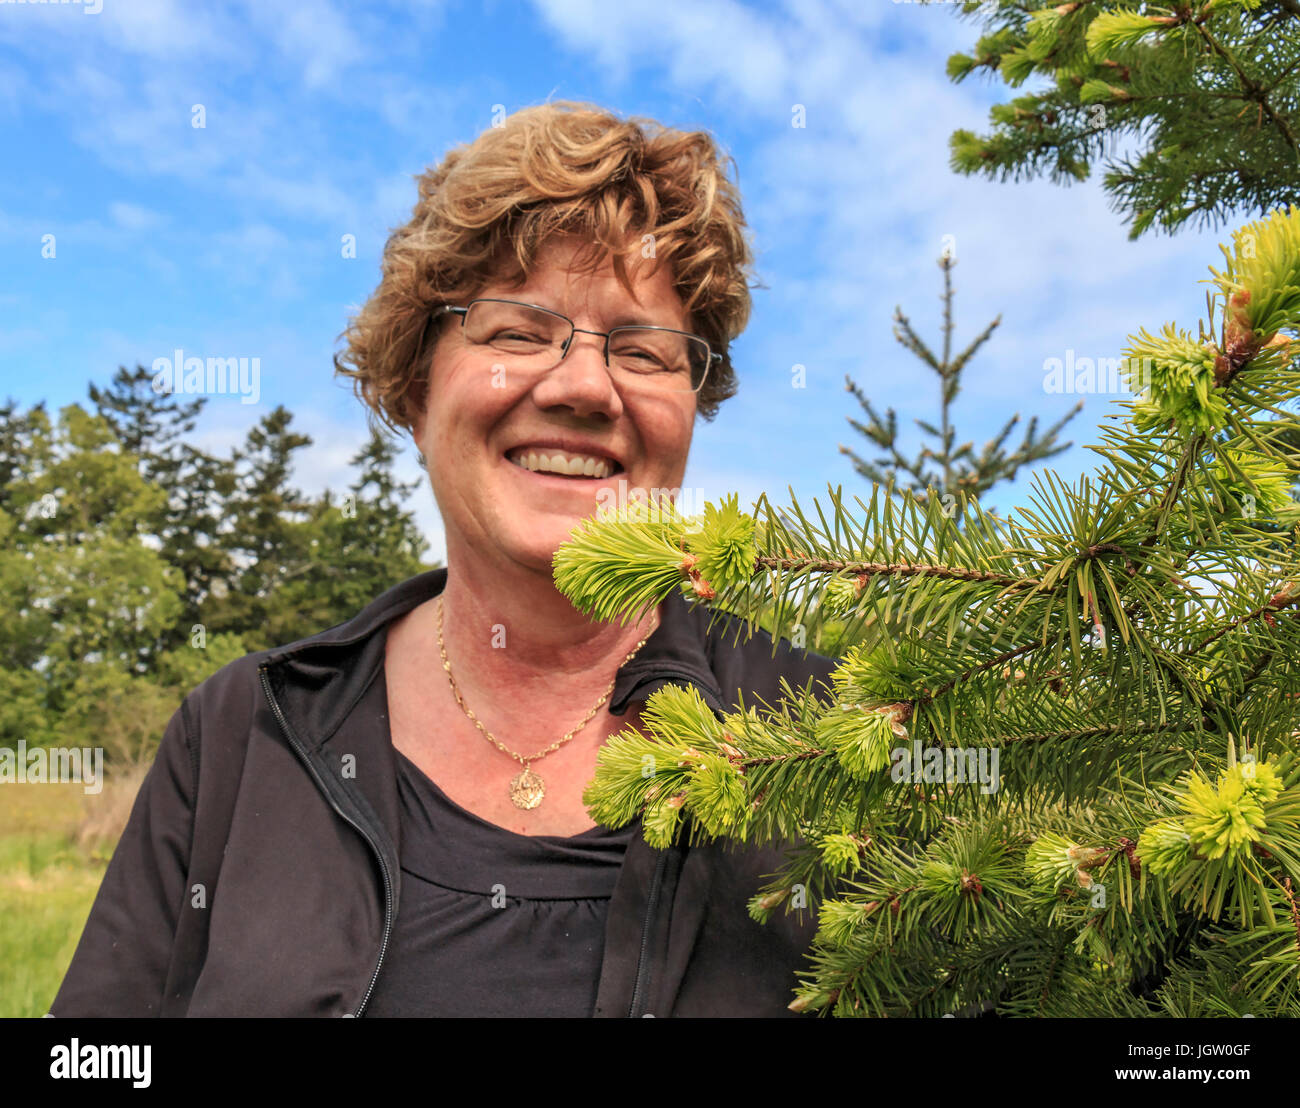 Laura Waters at her shop, Snowdon House outside Victoria, BC, Canada on Vancouver Island, where she sells edibles made from new growth on douglas fir  Stock Photo